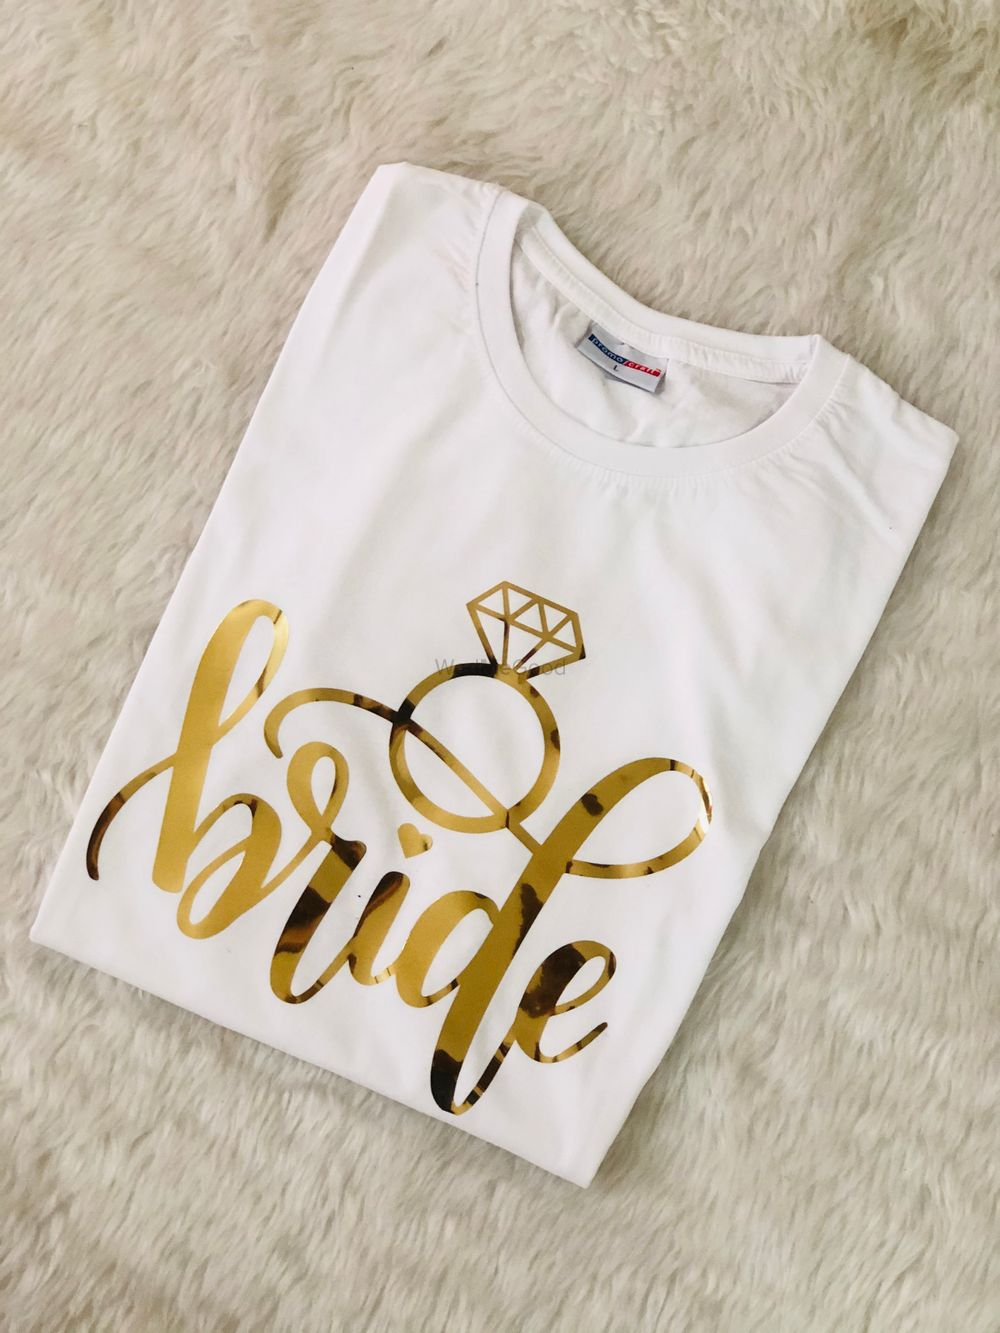 Photo From Bridesmaids - By Customade Musings by Karishma